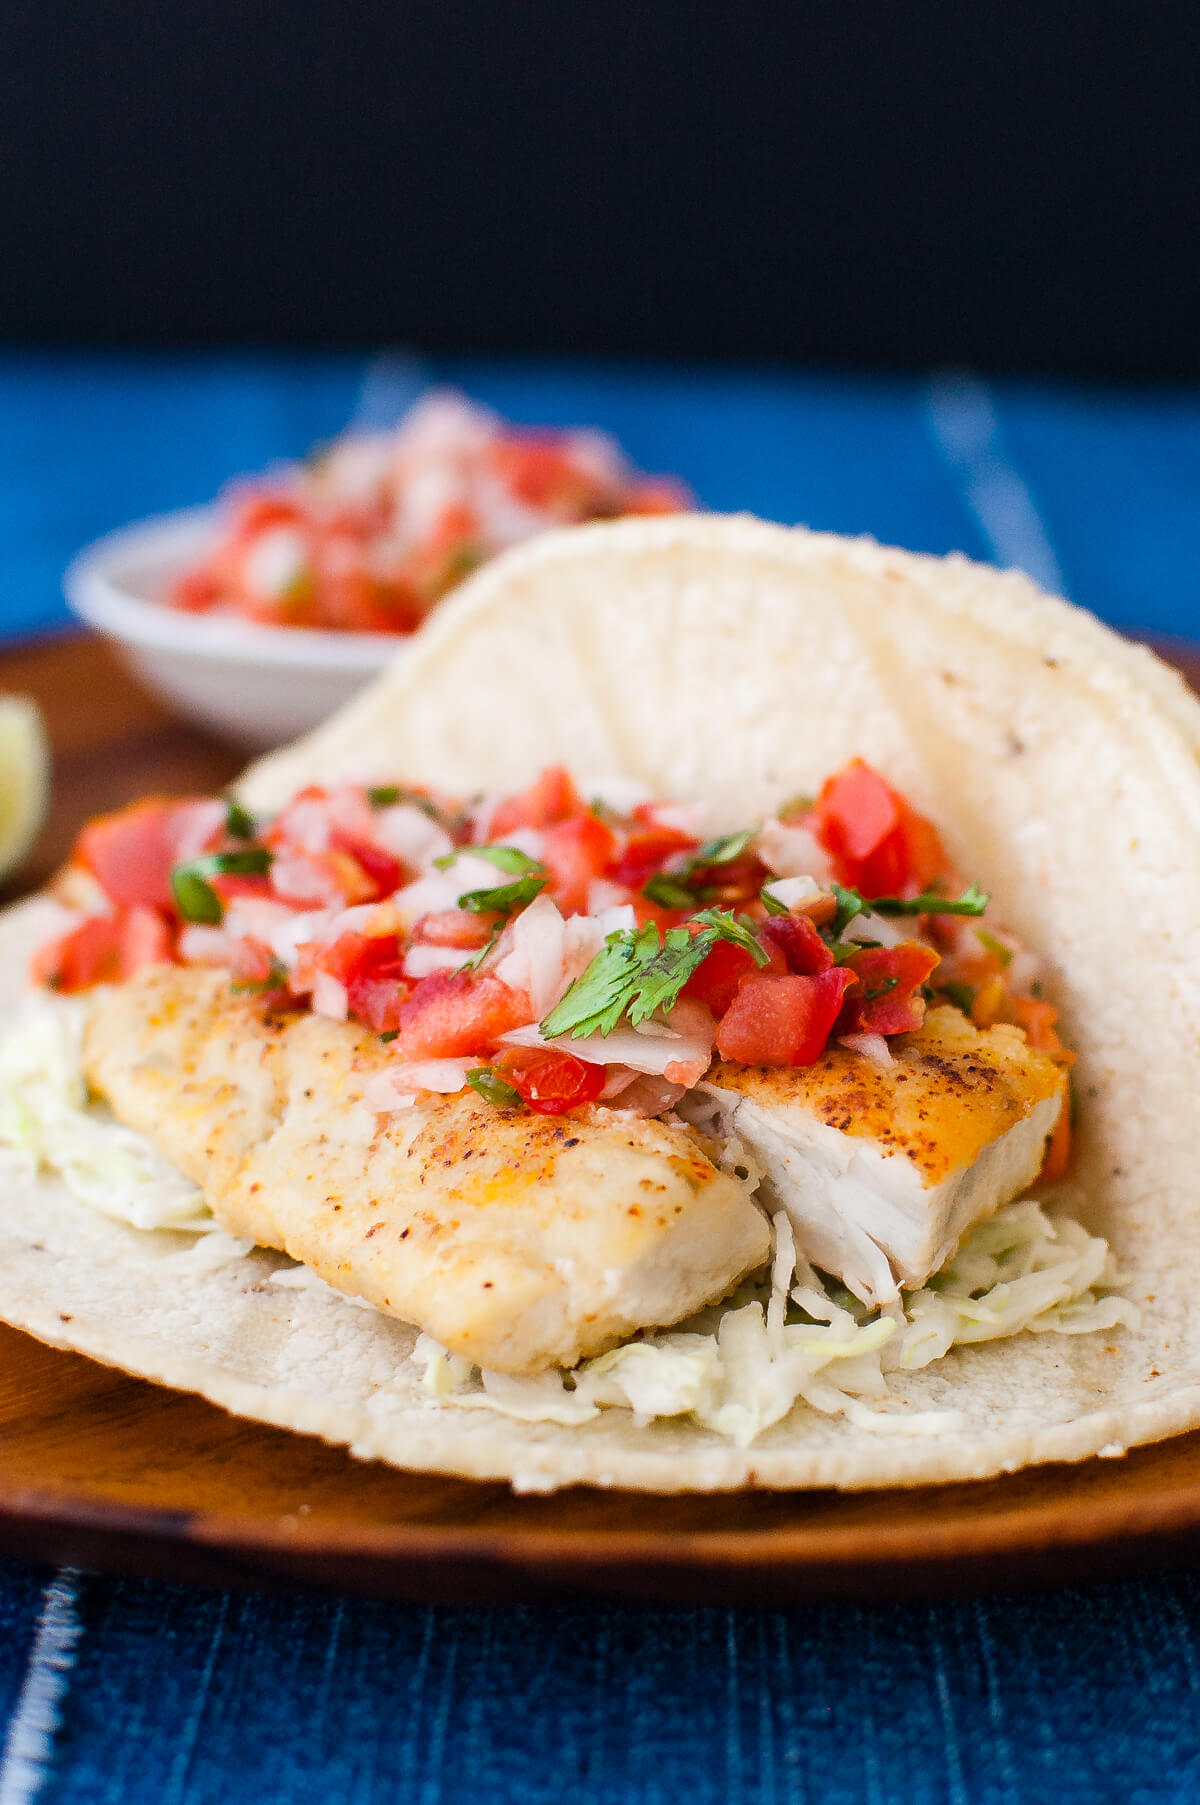 Close-up of a fish taco with pico de gallo on a wooden plate.